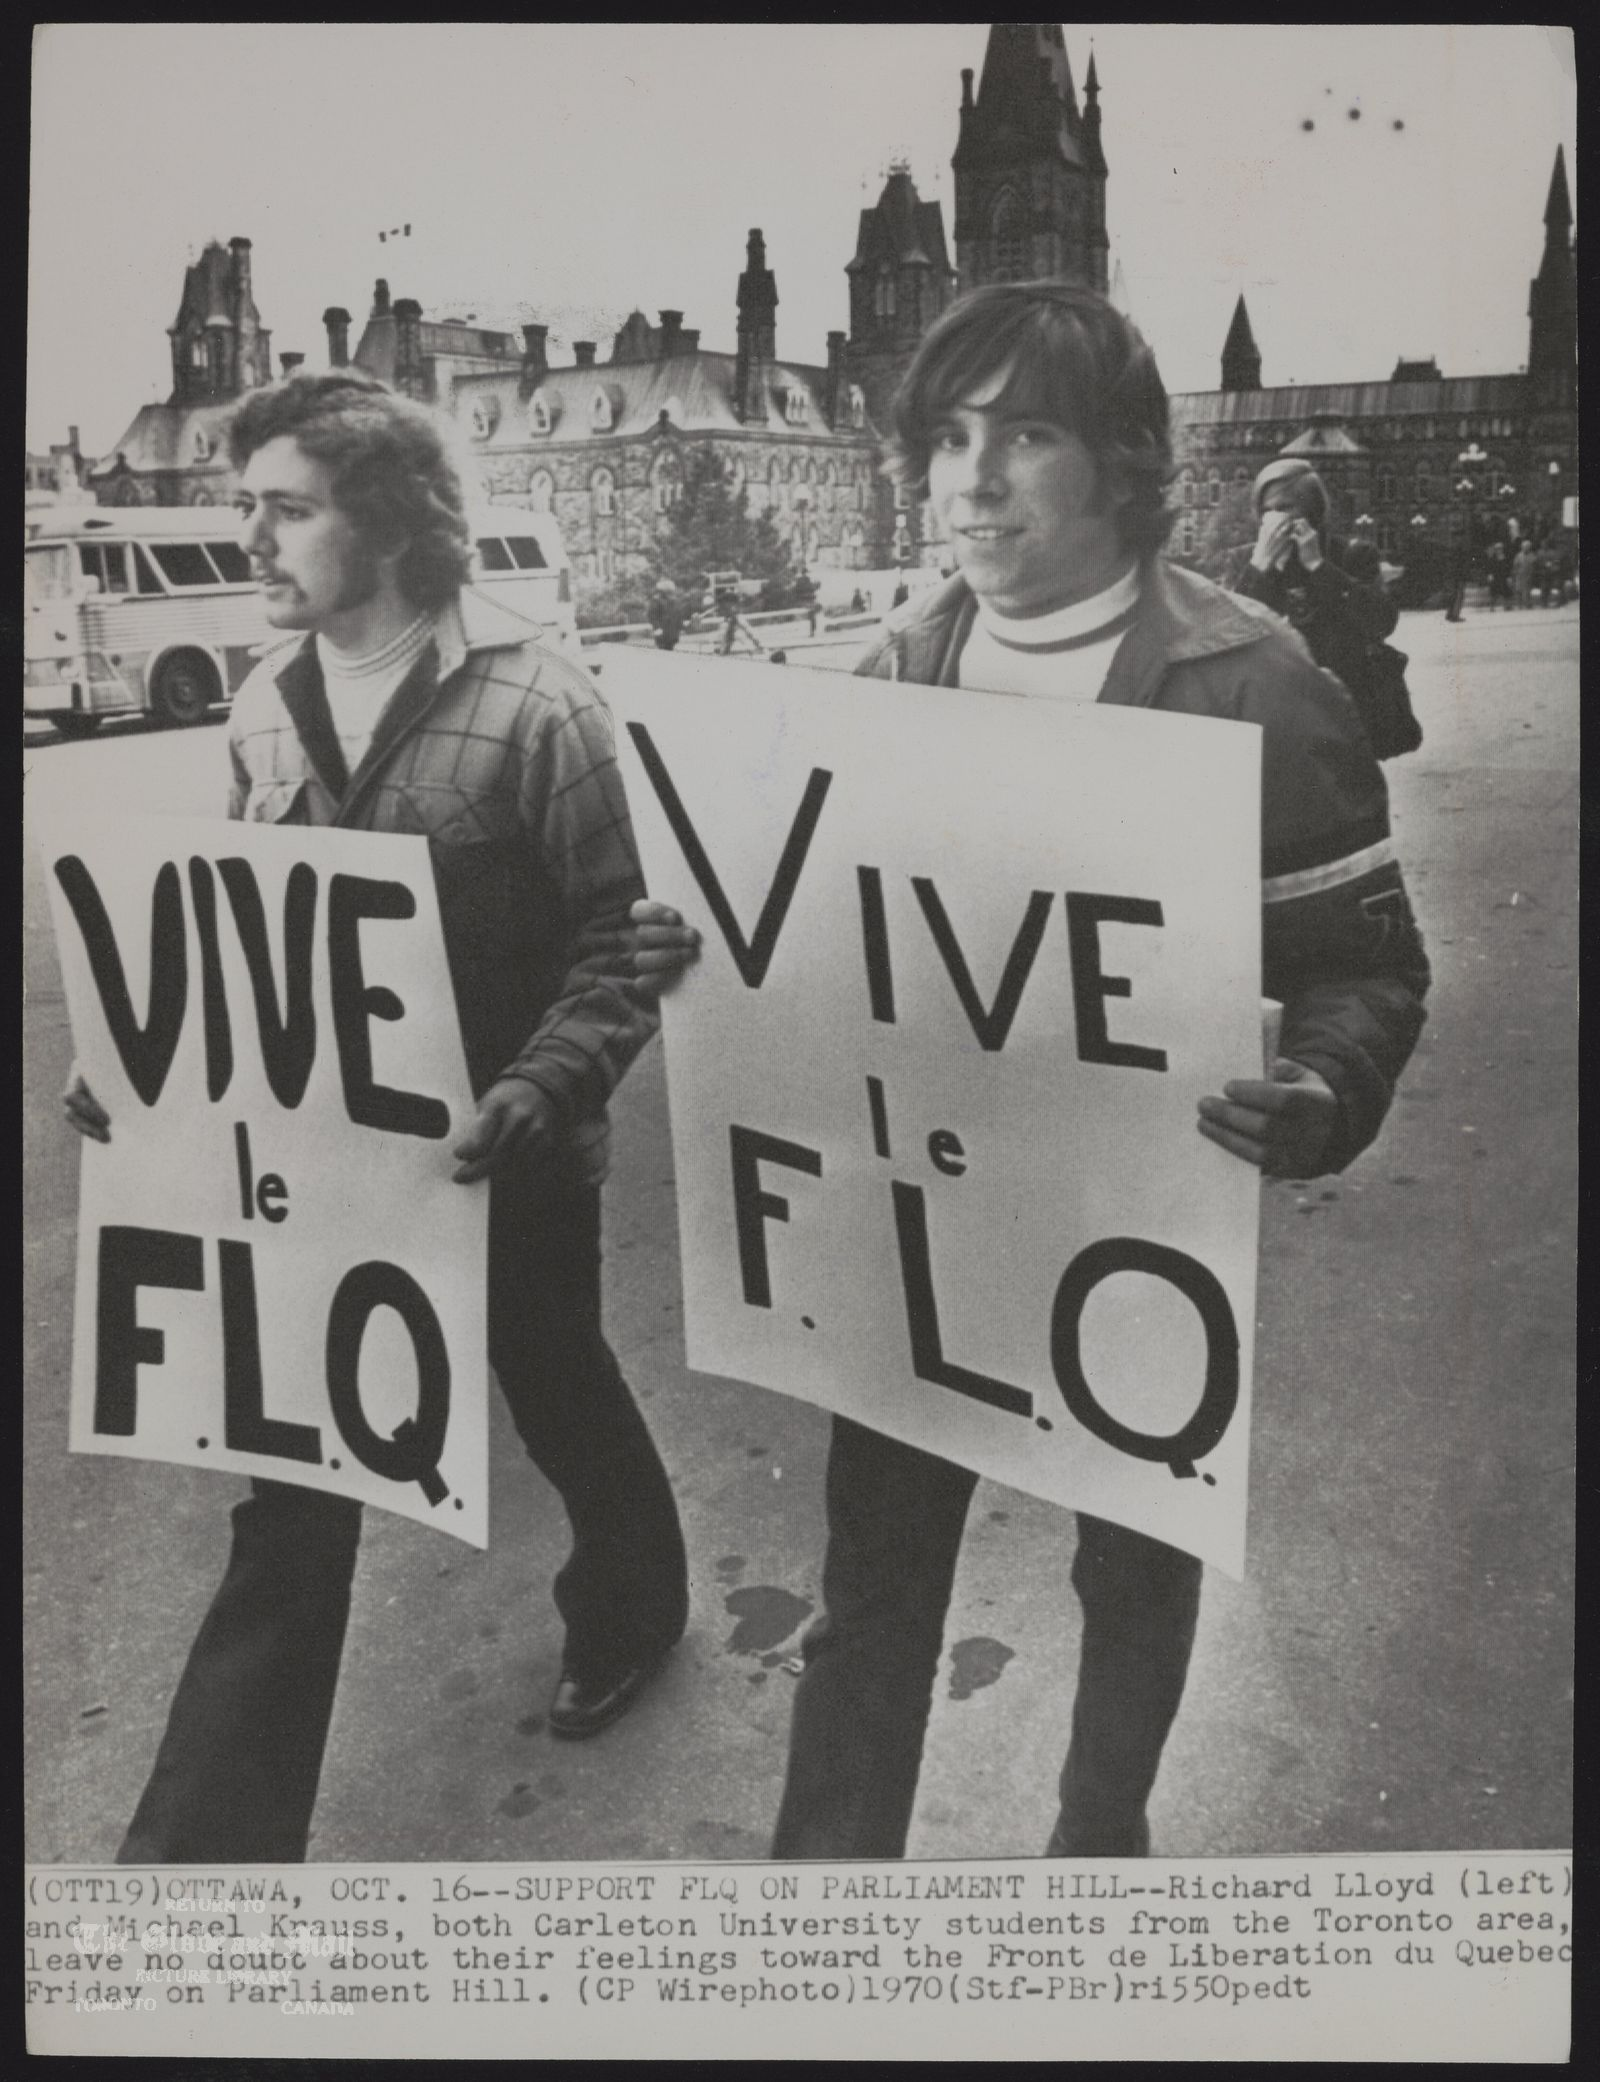 DEMONSTRATIONS Political (OTT19) OTTAWA, OCT. 16--SUPPORT FLQ ON PARLIAMENT HILL --Richard Lloyd (left) and Michael Krauss, both Carleton University students from the Toronto area, leave no doubt their feelings toward the Front de Liberation du Quebec Friday on Parliament Hill. (CP Wirephoto) 1970 (Stf-PBr) ri550pedt